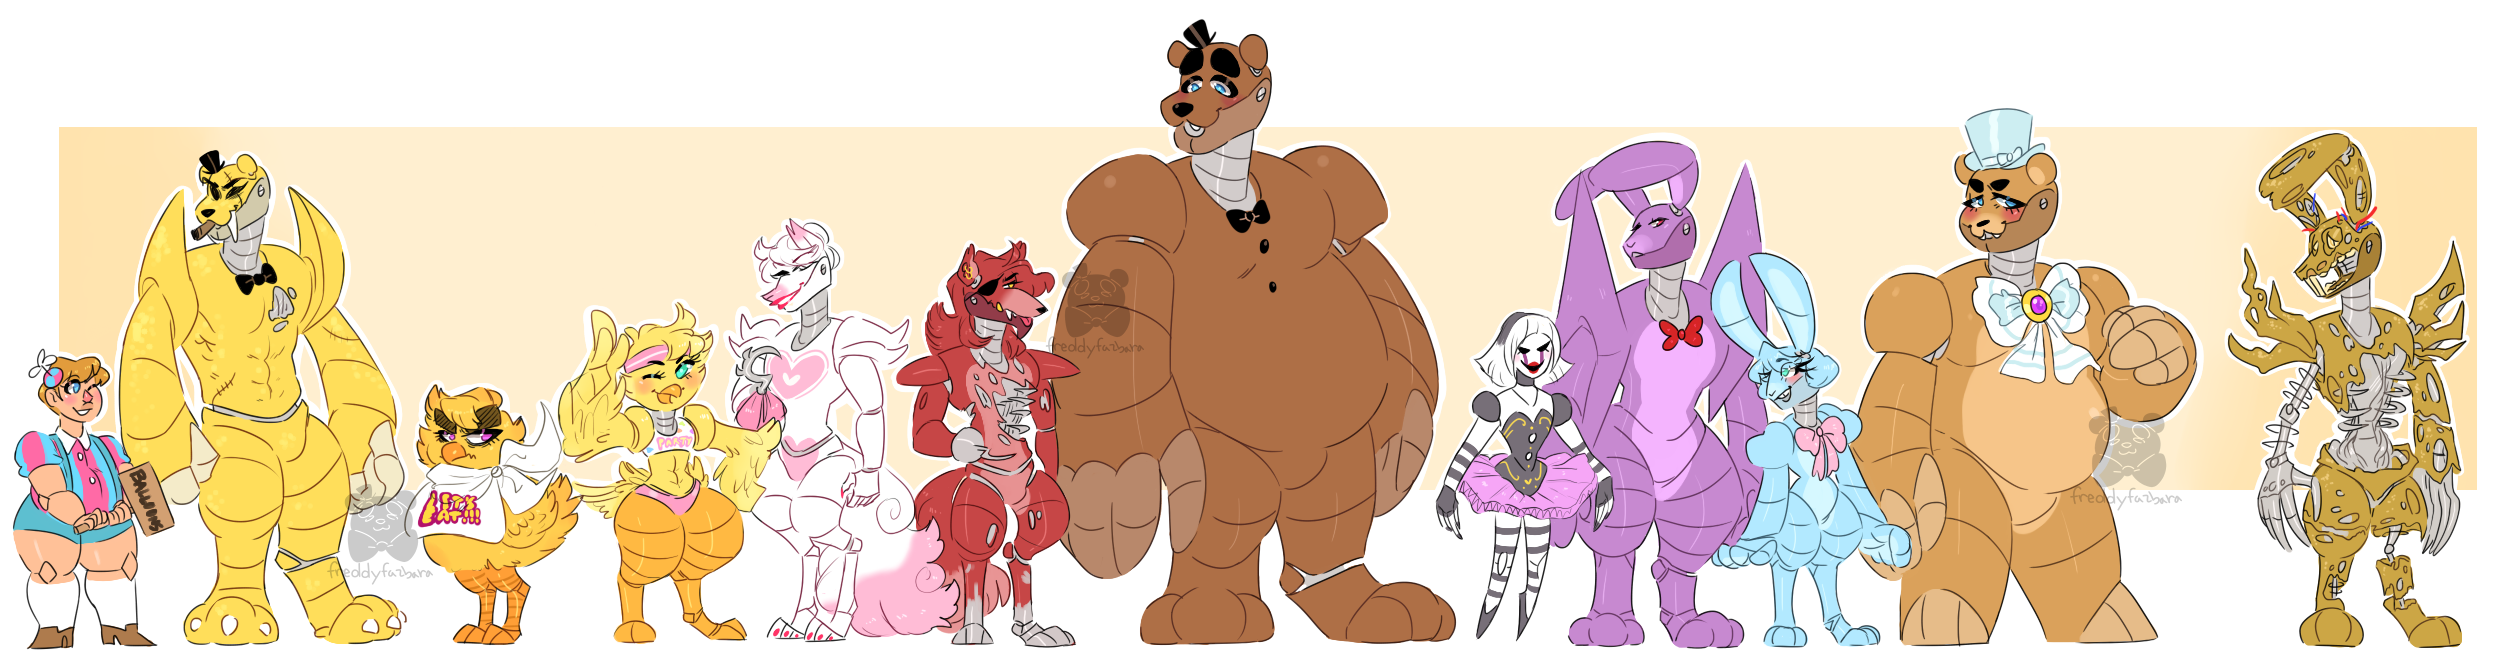 Heights clipart height chart Dongoverlord Height Fnaf Chart Chart